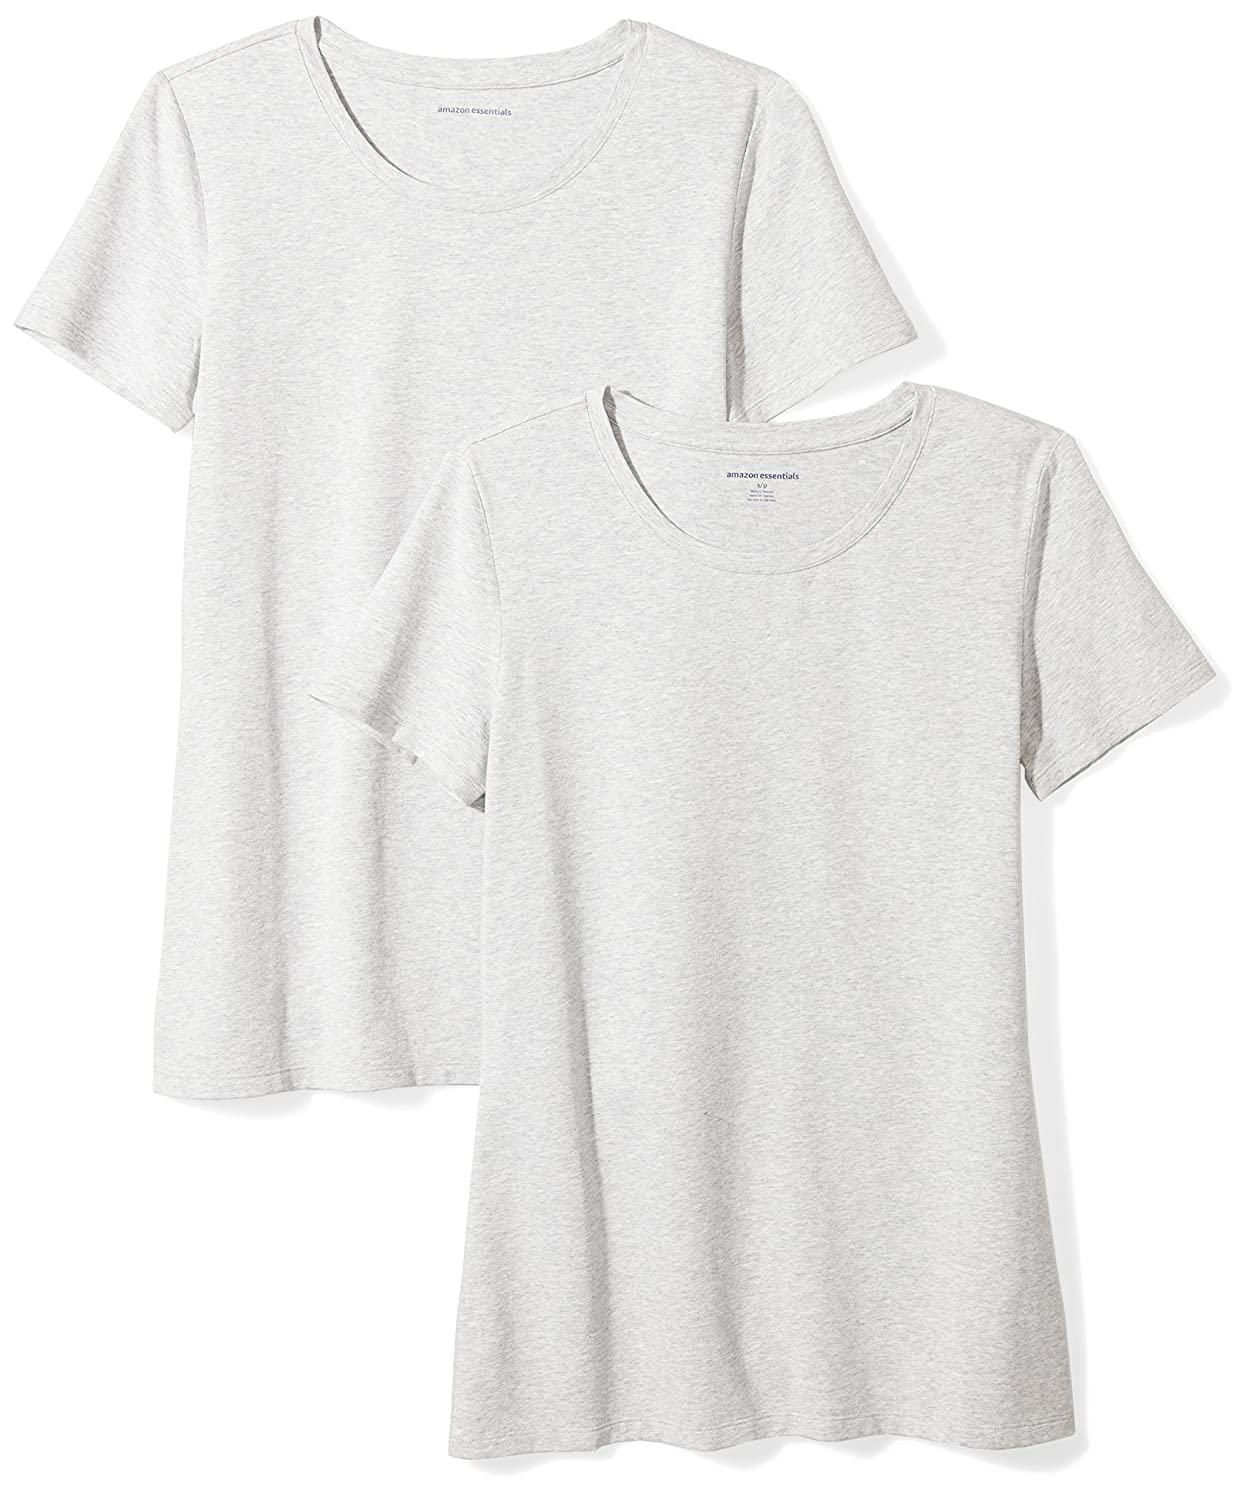 Amazon Essentials Women's 2-Pack Short-Sleeve Crewneck Solid T-Shirt WAE45054SP18